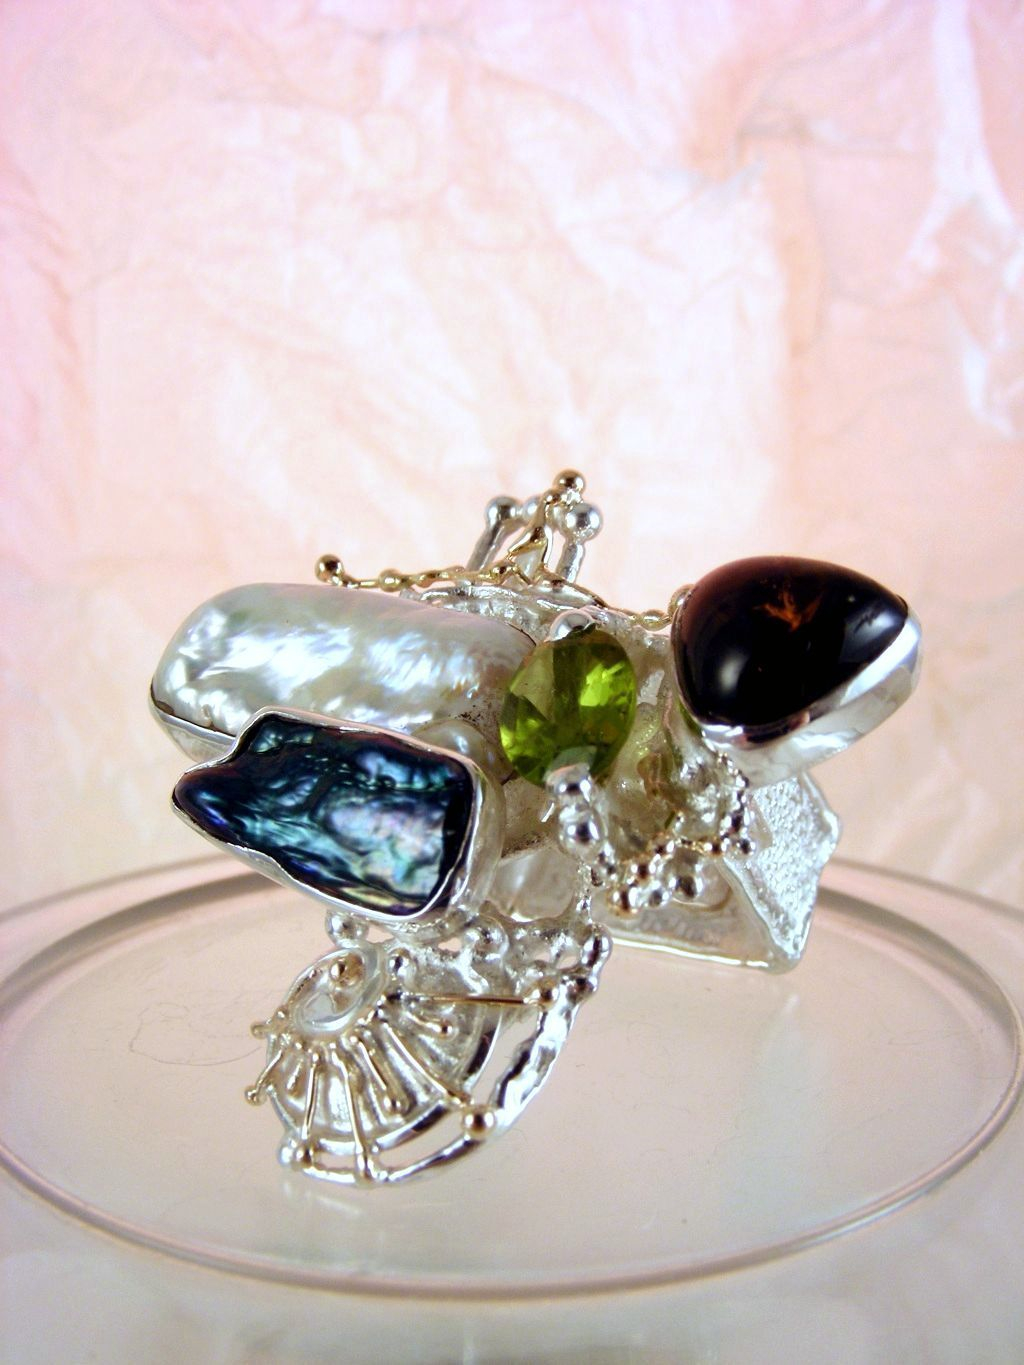 Ring with Tourmaline #8932, Original Handcrafted, Sterling silver and Gold, Peridot, Tourmaline, Pearls